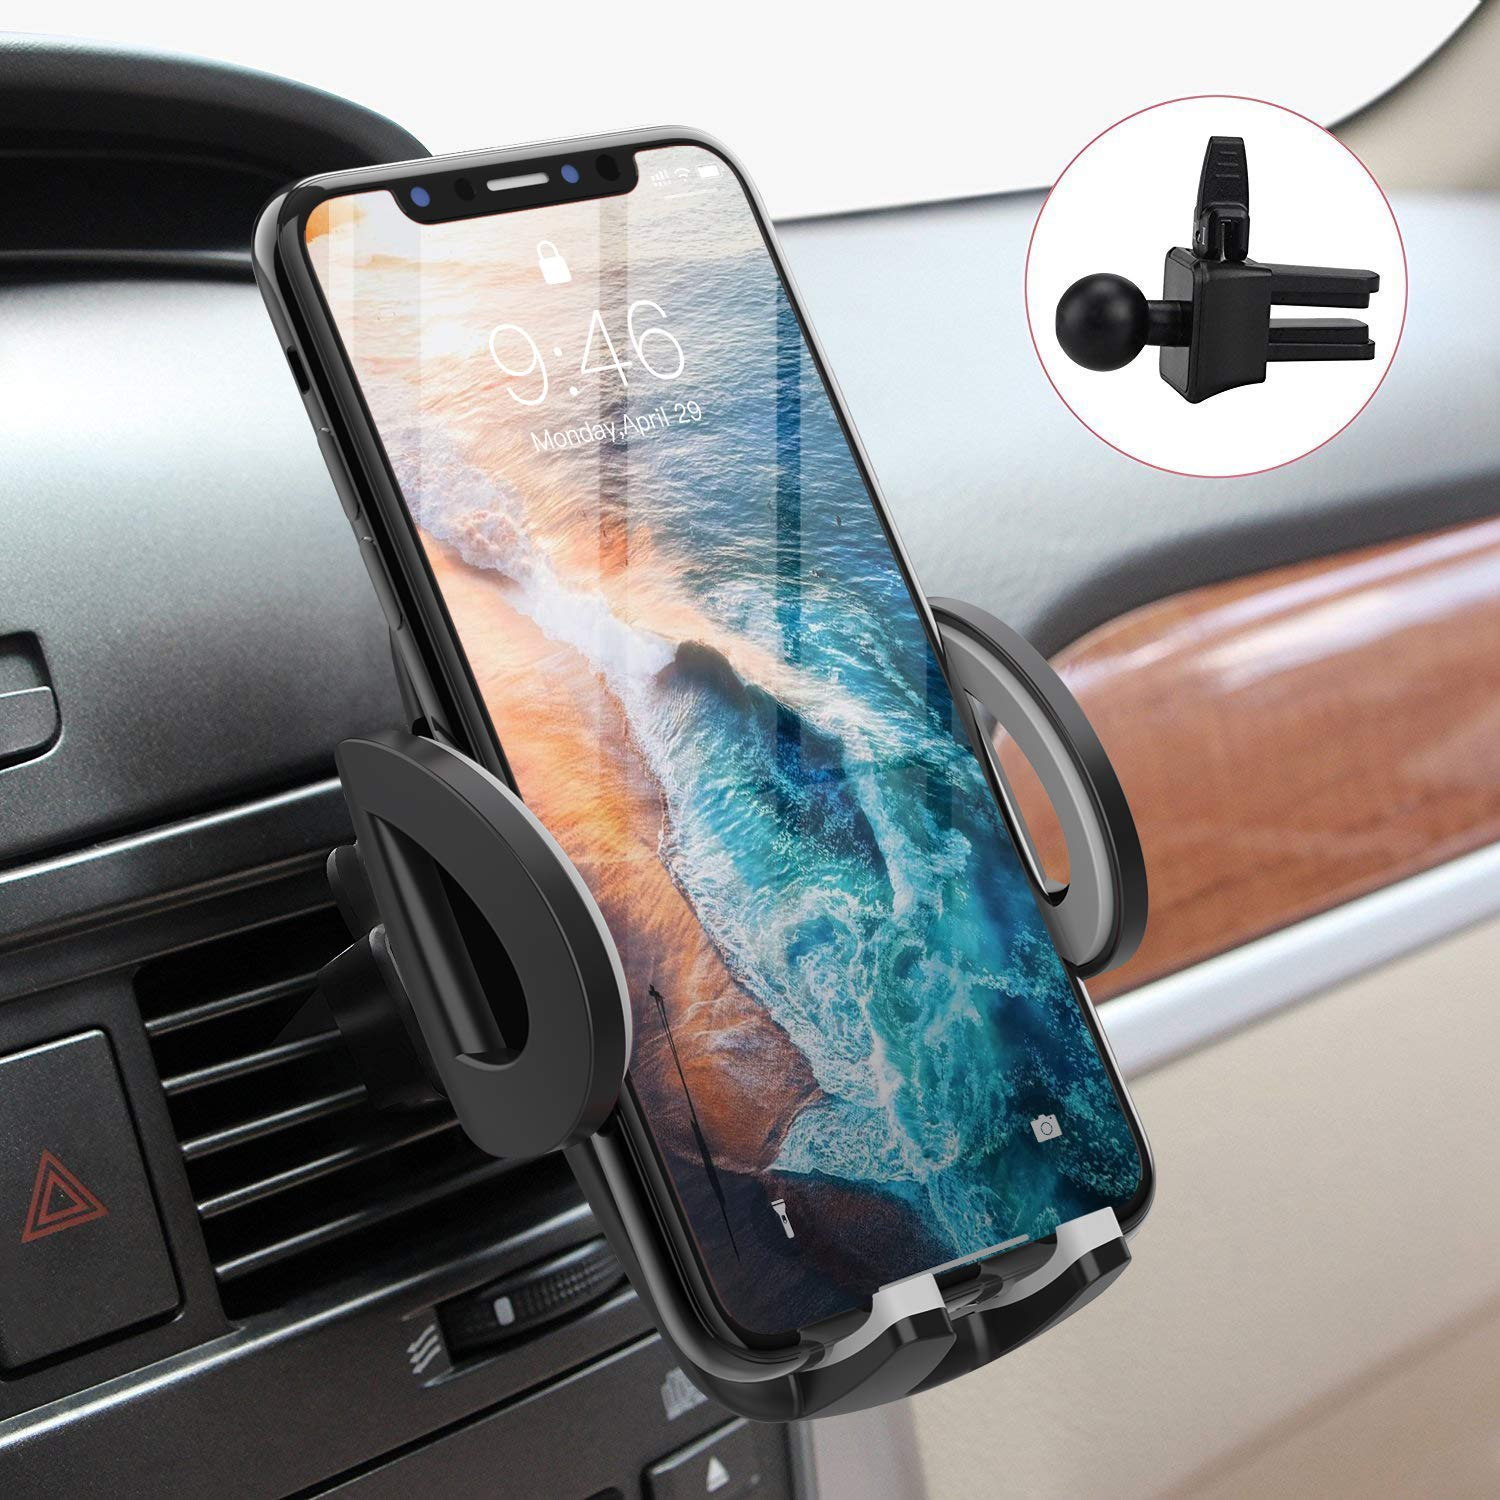 Phone Car Holder, Avolare Car Mobile Pho- Buy Online in Pakistan at  Desertcart